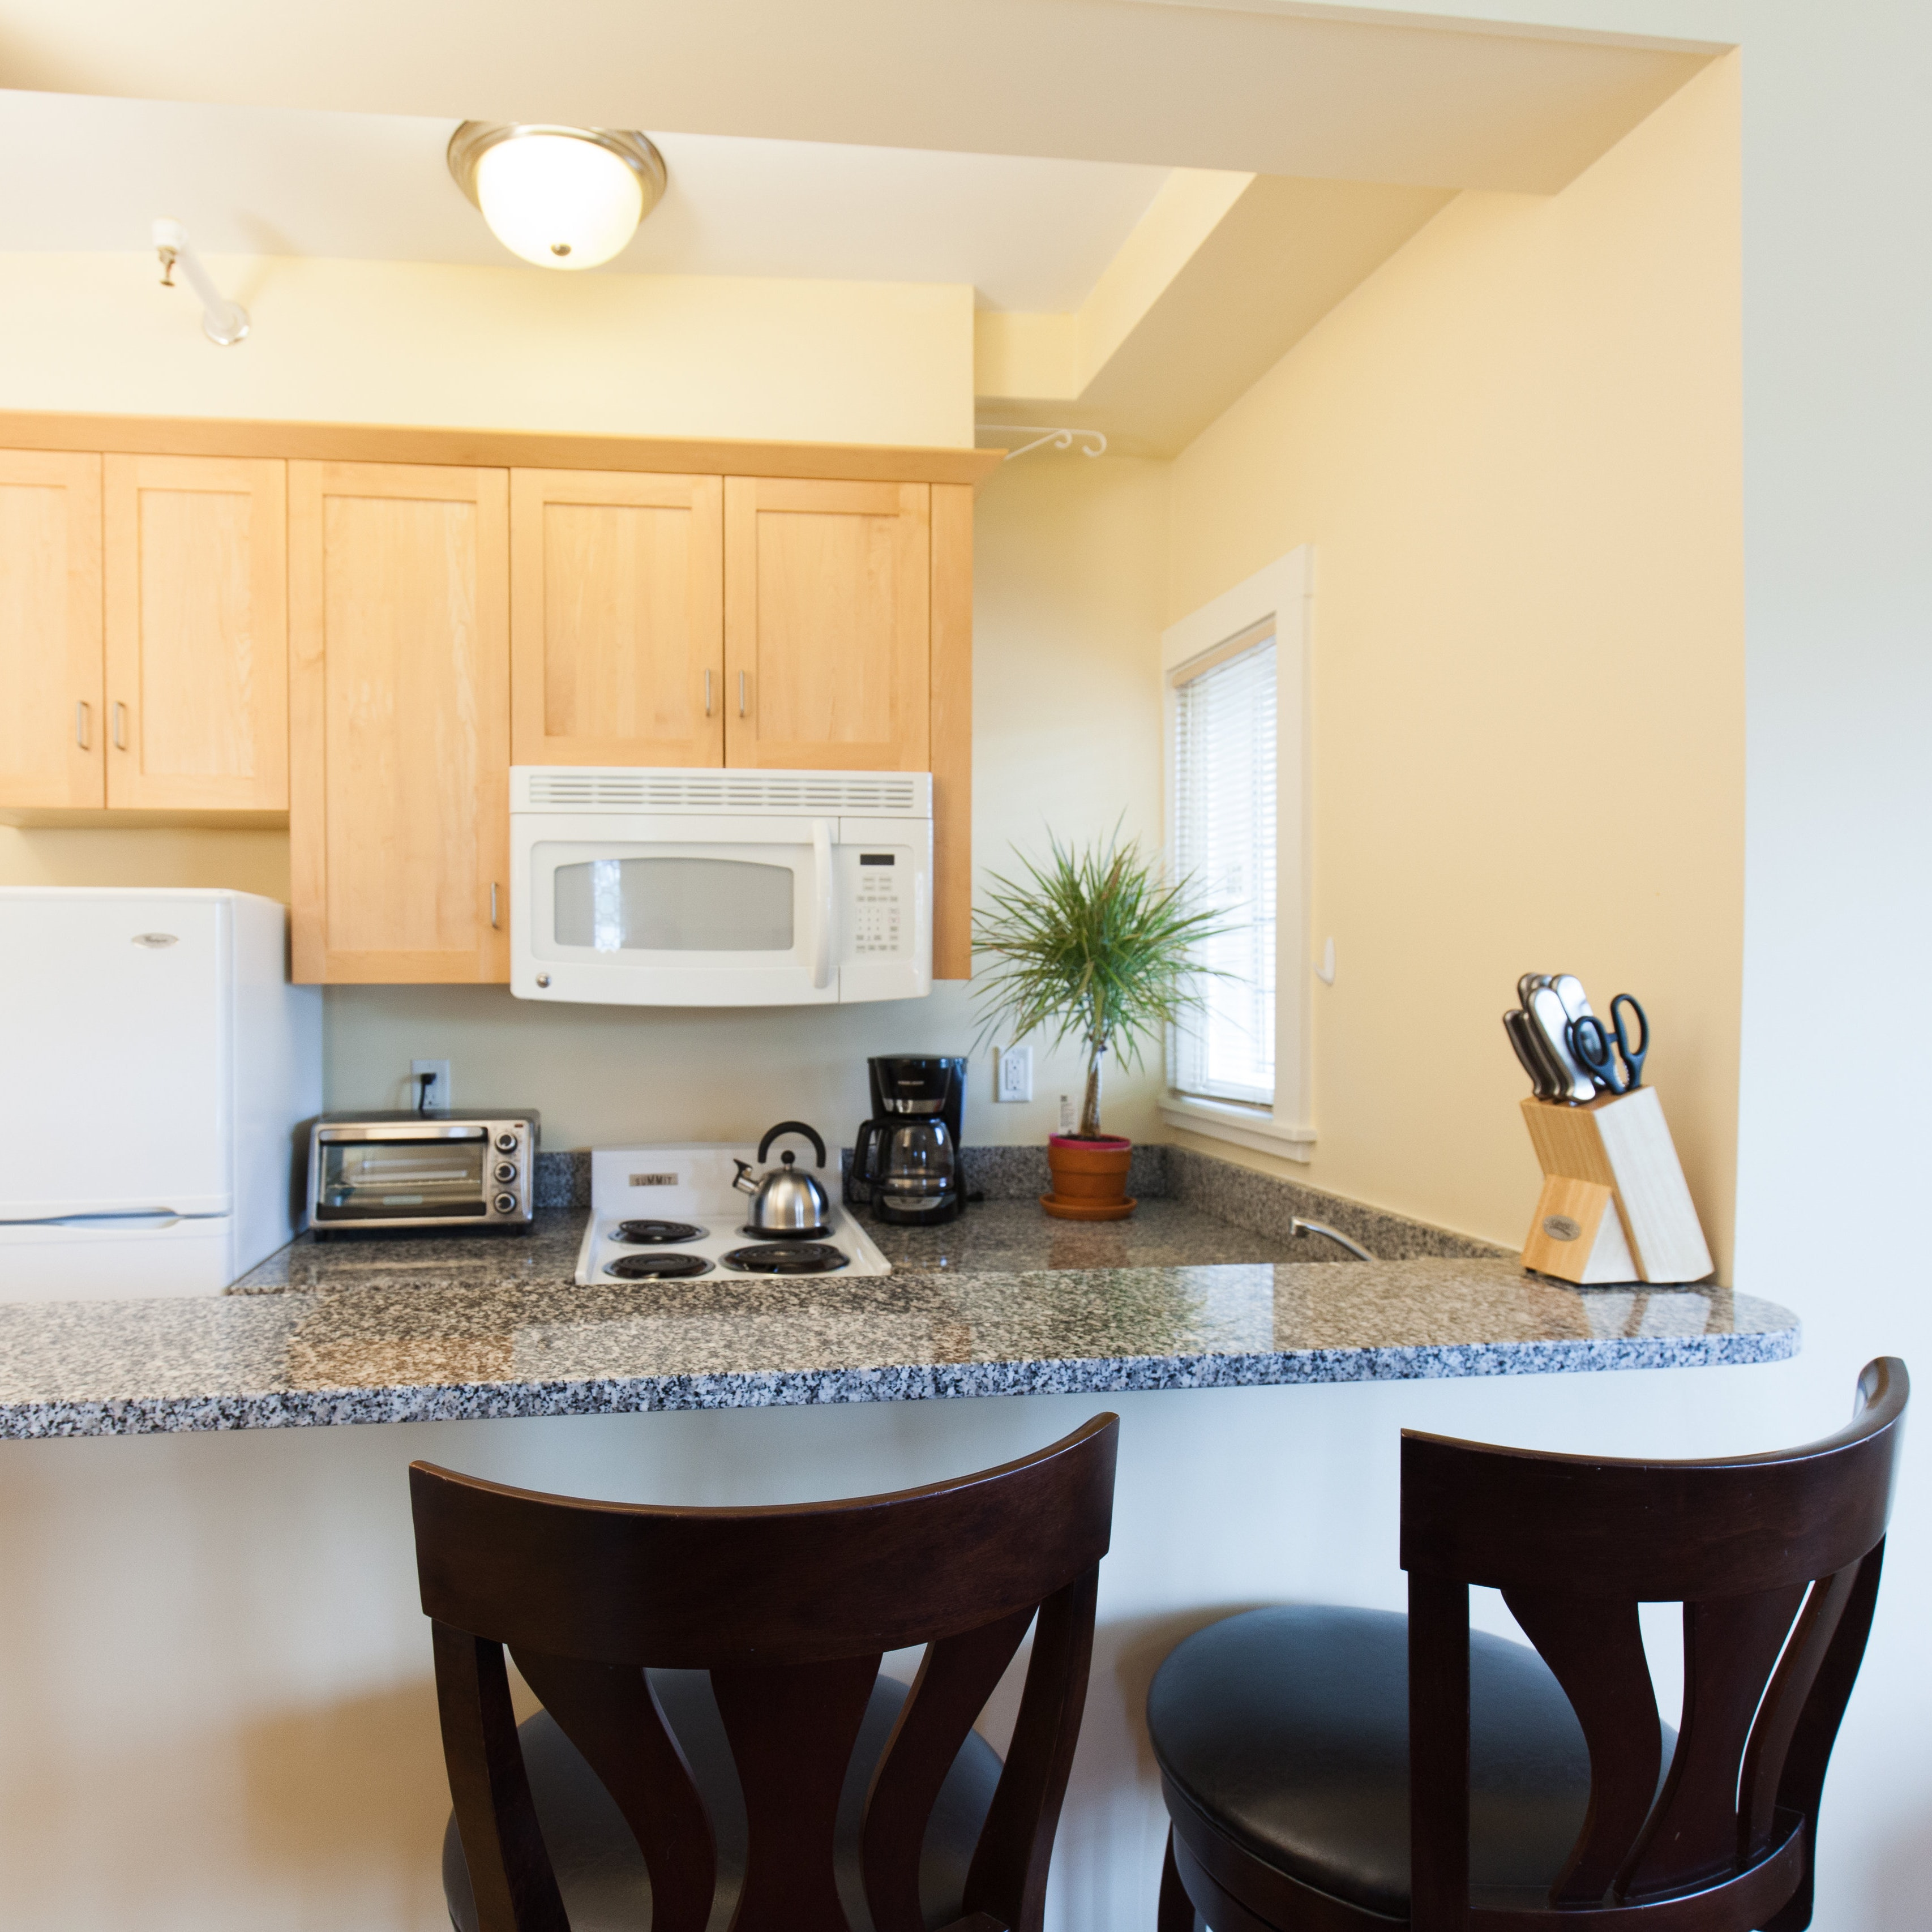 Kitchen area of 83 Brattle Street studio apartment with alcove